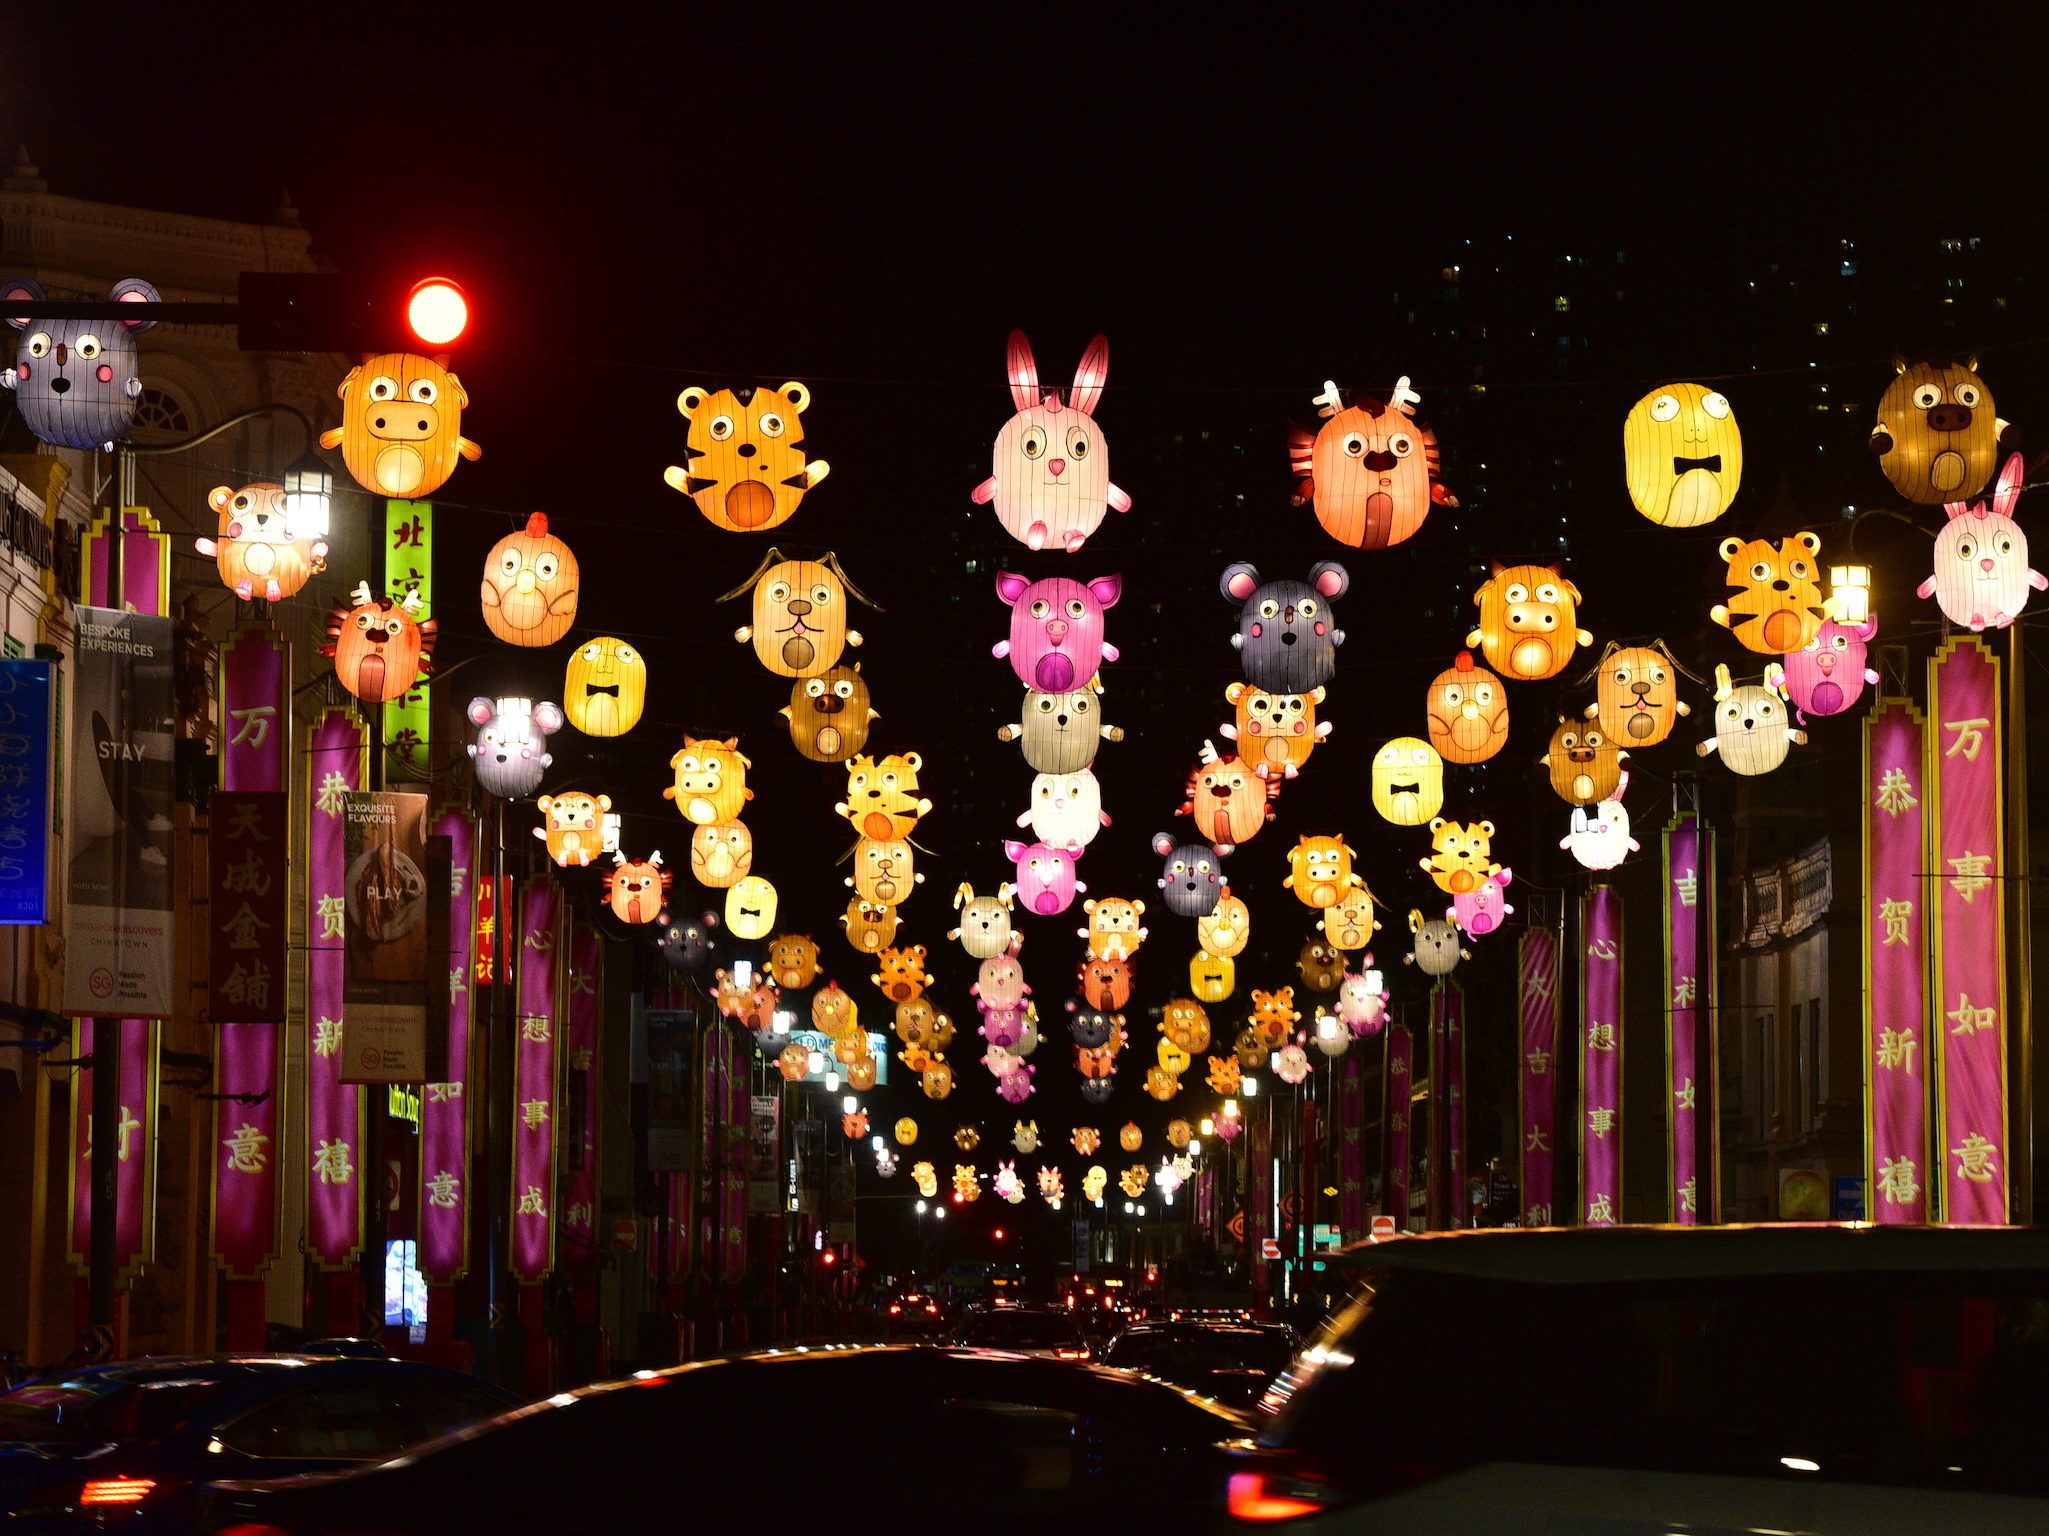 The most Instagrammable Chinese New Year decorations in Singapore